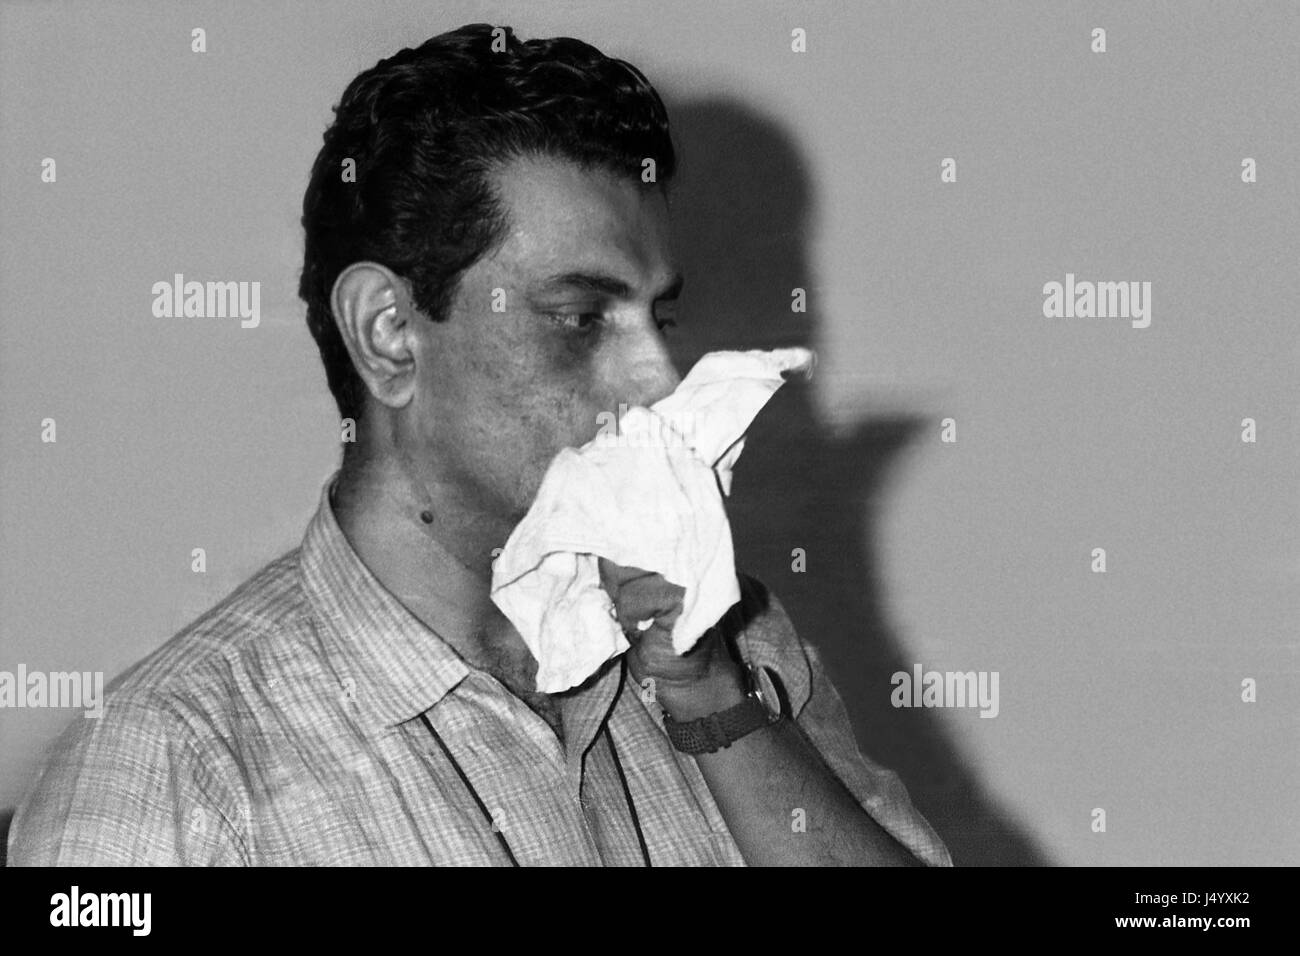 Indian regista bengalese, Satyajit Ray, India, Asia Immagini Stock